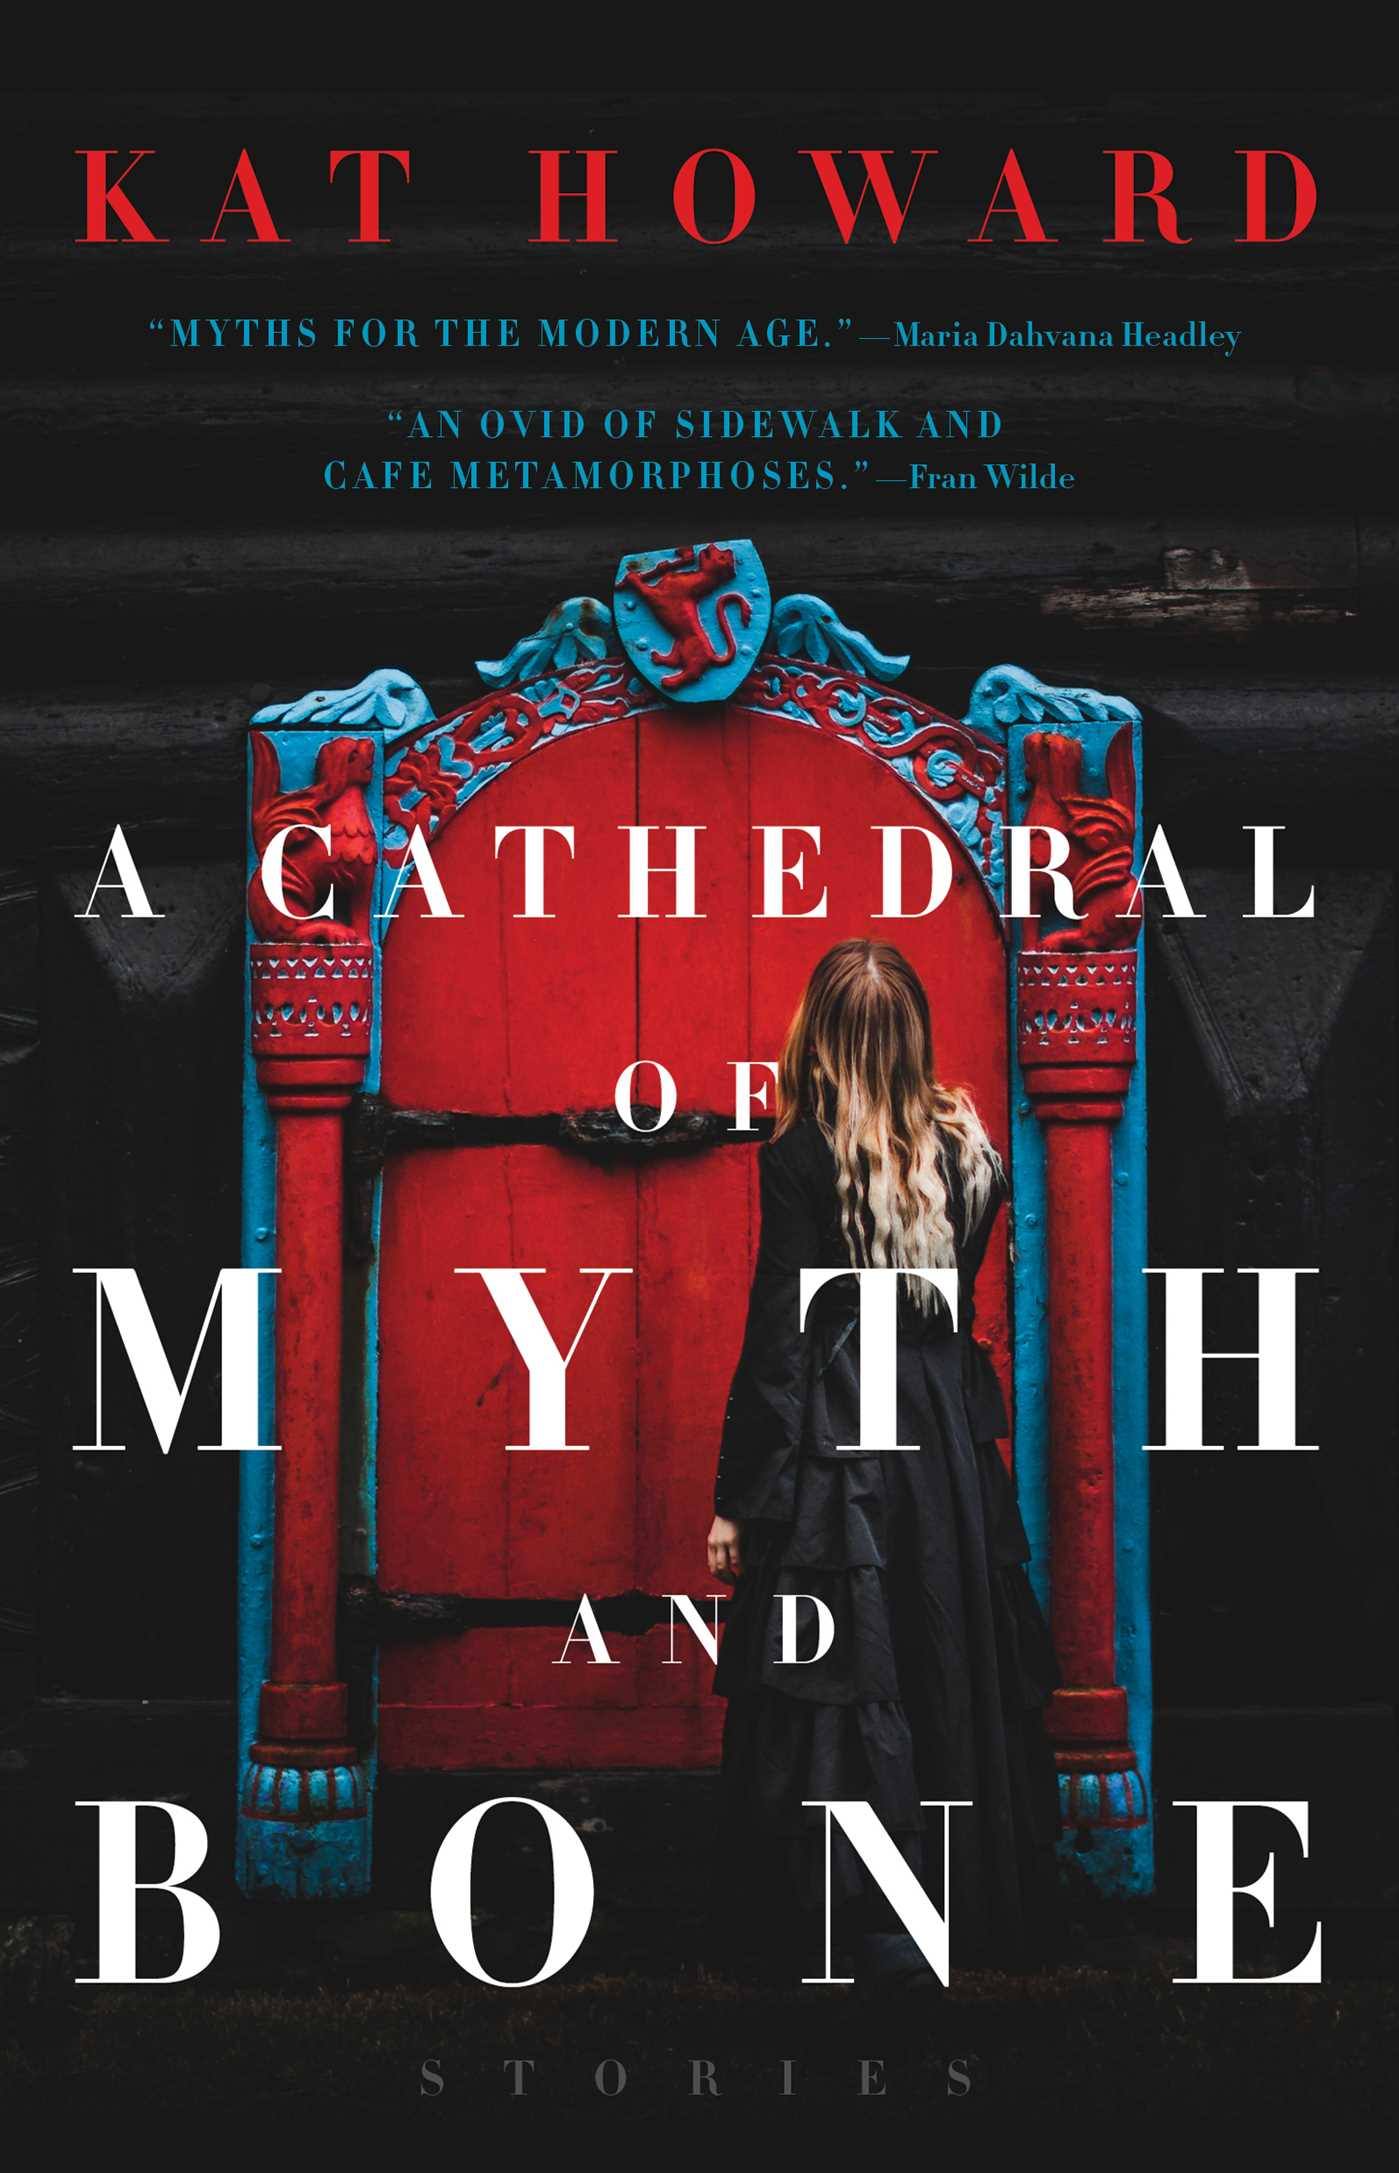 Image result for a cathedral of myth and bone